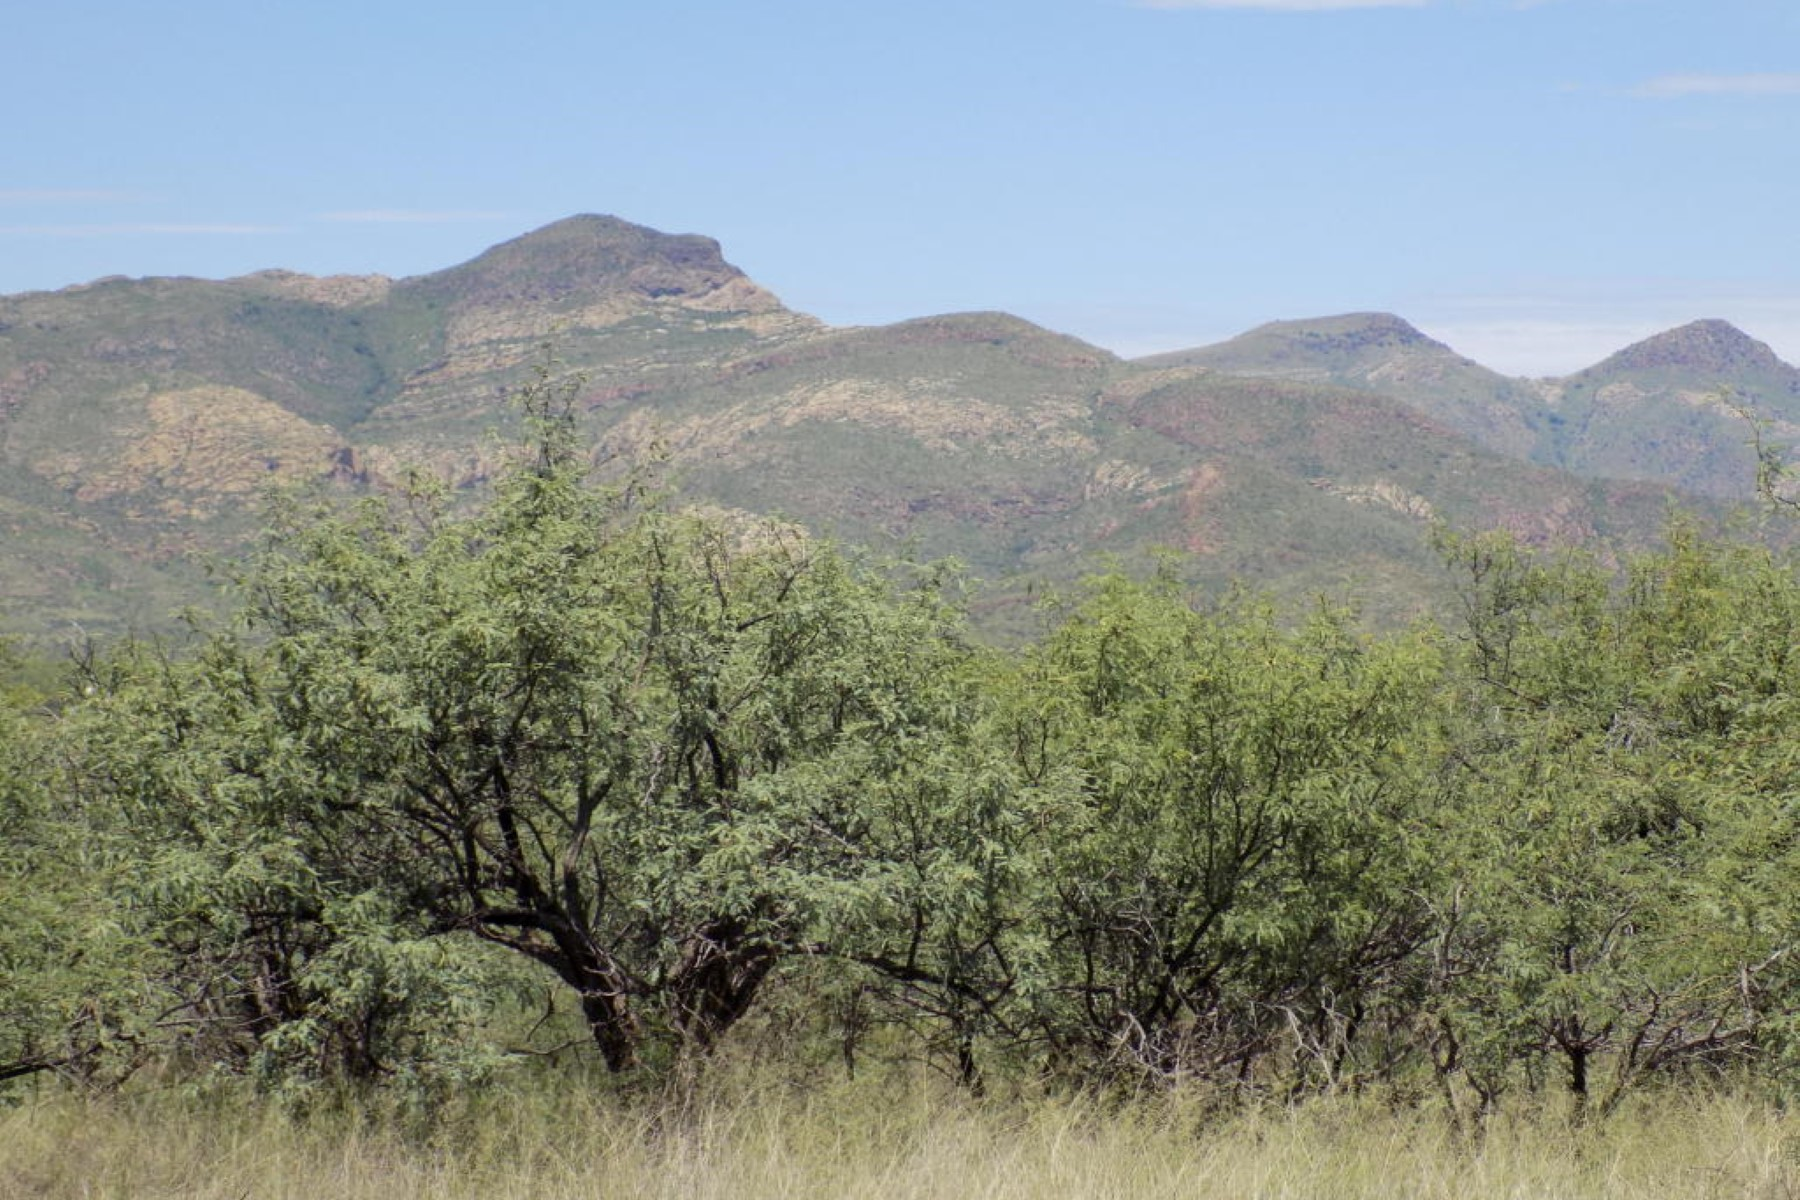 Land for Sale at Wonderful 84.04 acre lot. TBD RIO RICO, Rio Rico, Arizona, 85648 United States